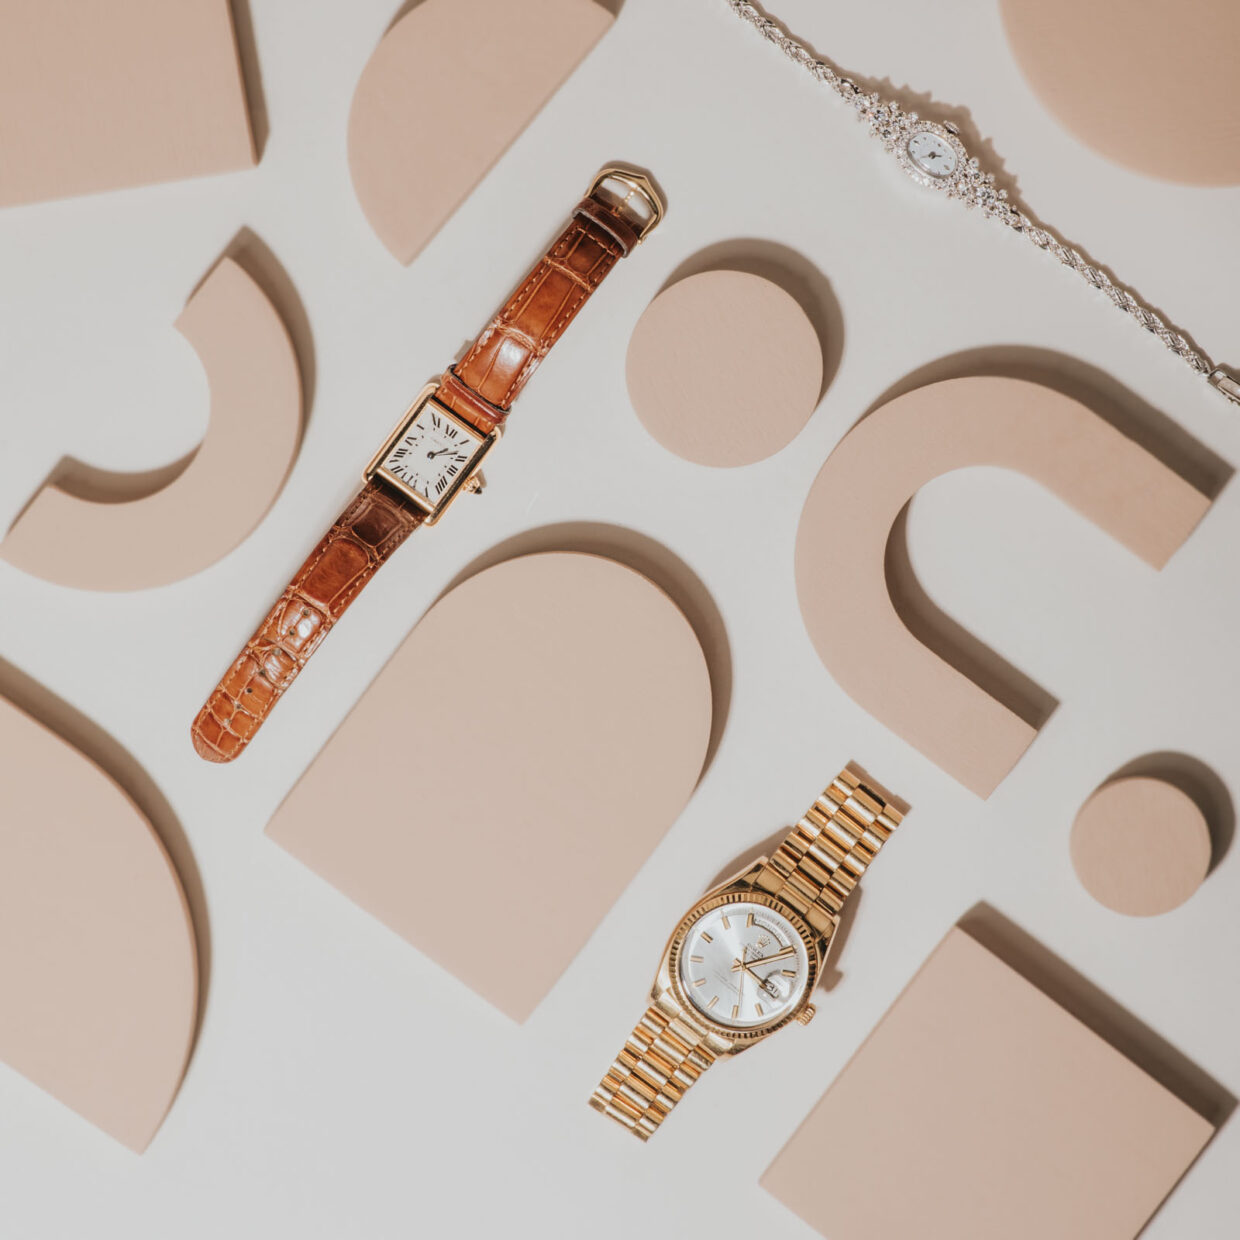 creative photoshoot for jewelry. Layflat ideas for professional photography. 3 watches. One with diamond encrusted band, another with gold links, and last with walnut leather band. Cartier and Rolex watches